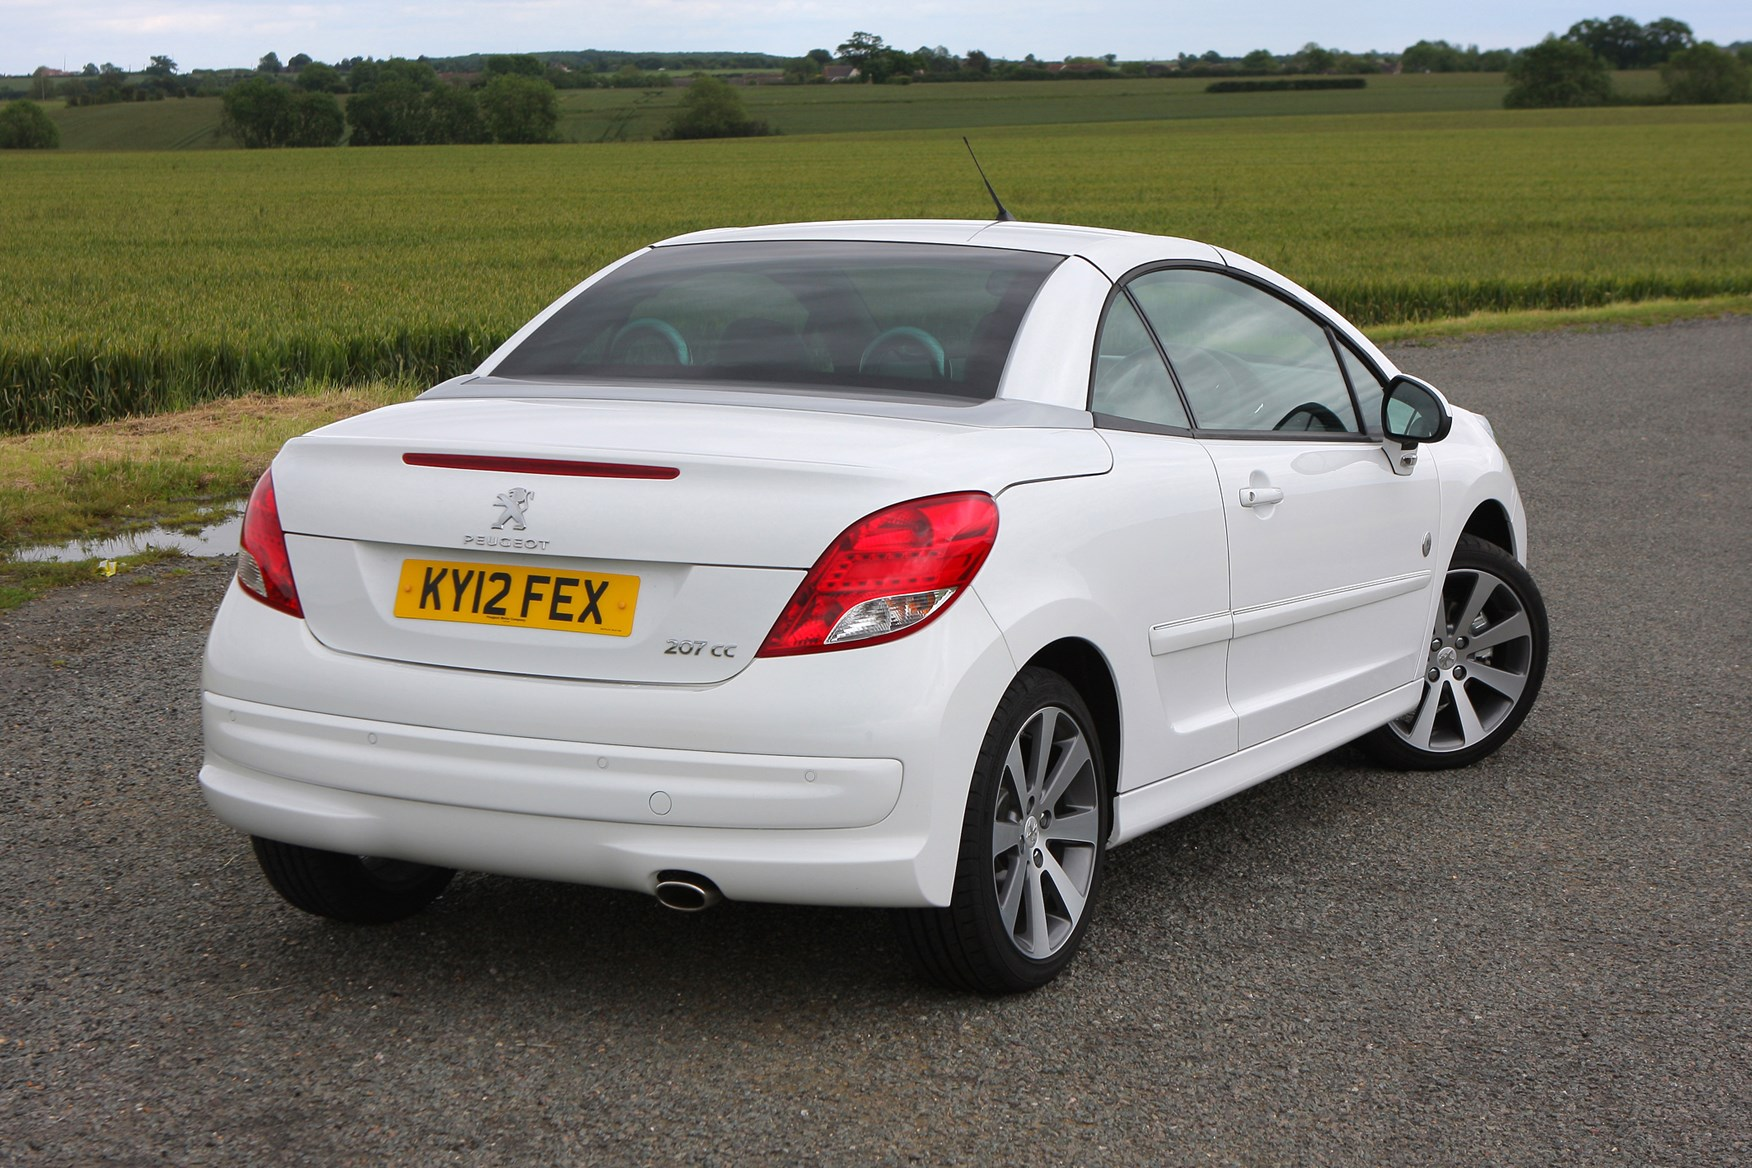 Used Peugeot 207 CC (2007 - 2014) Review | Parkers